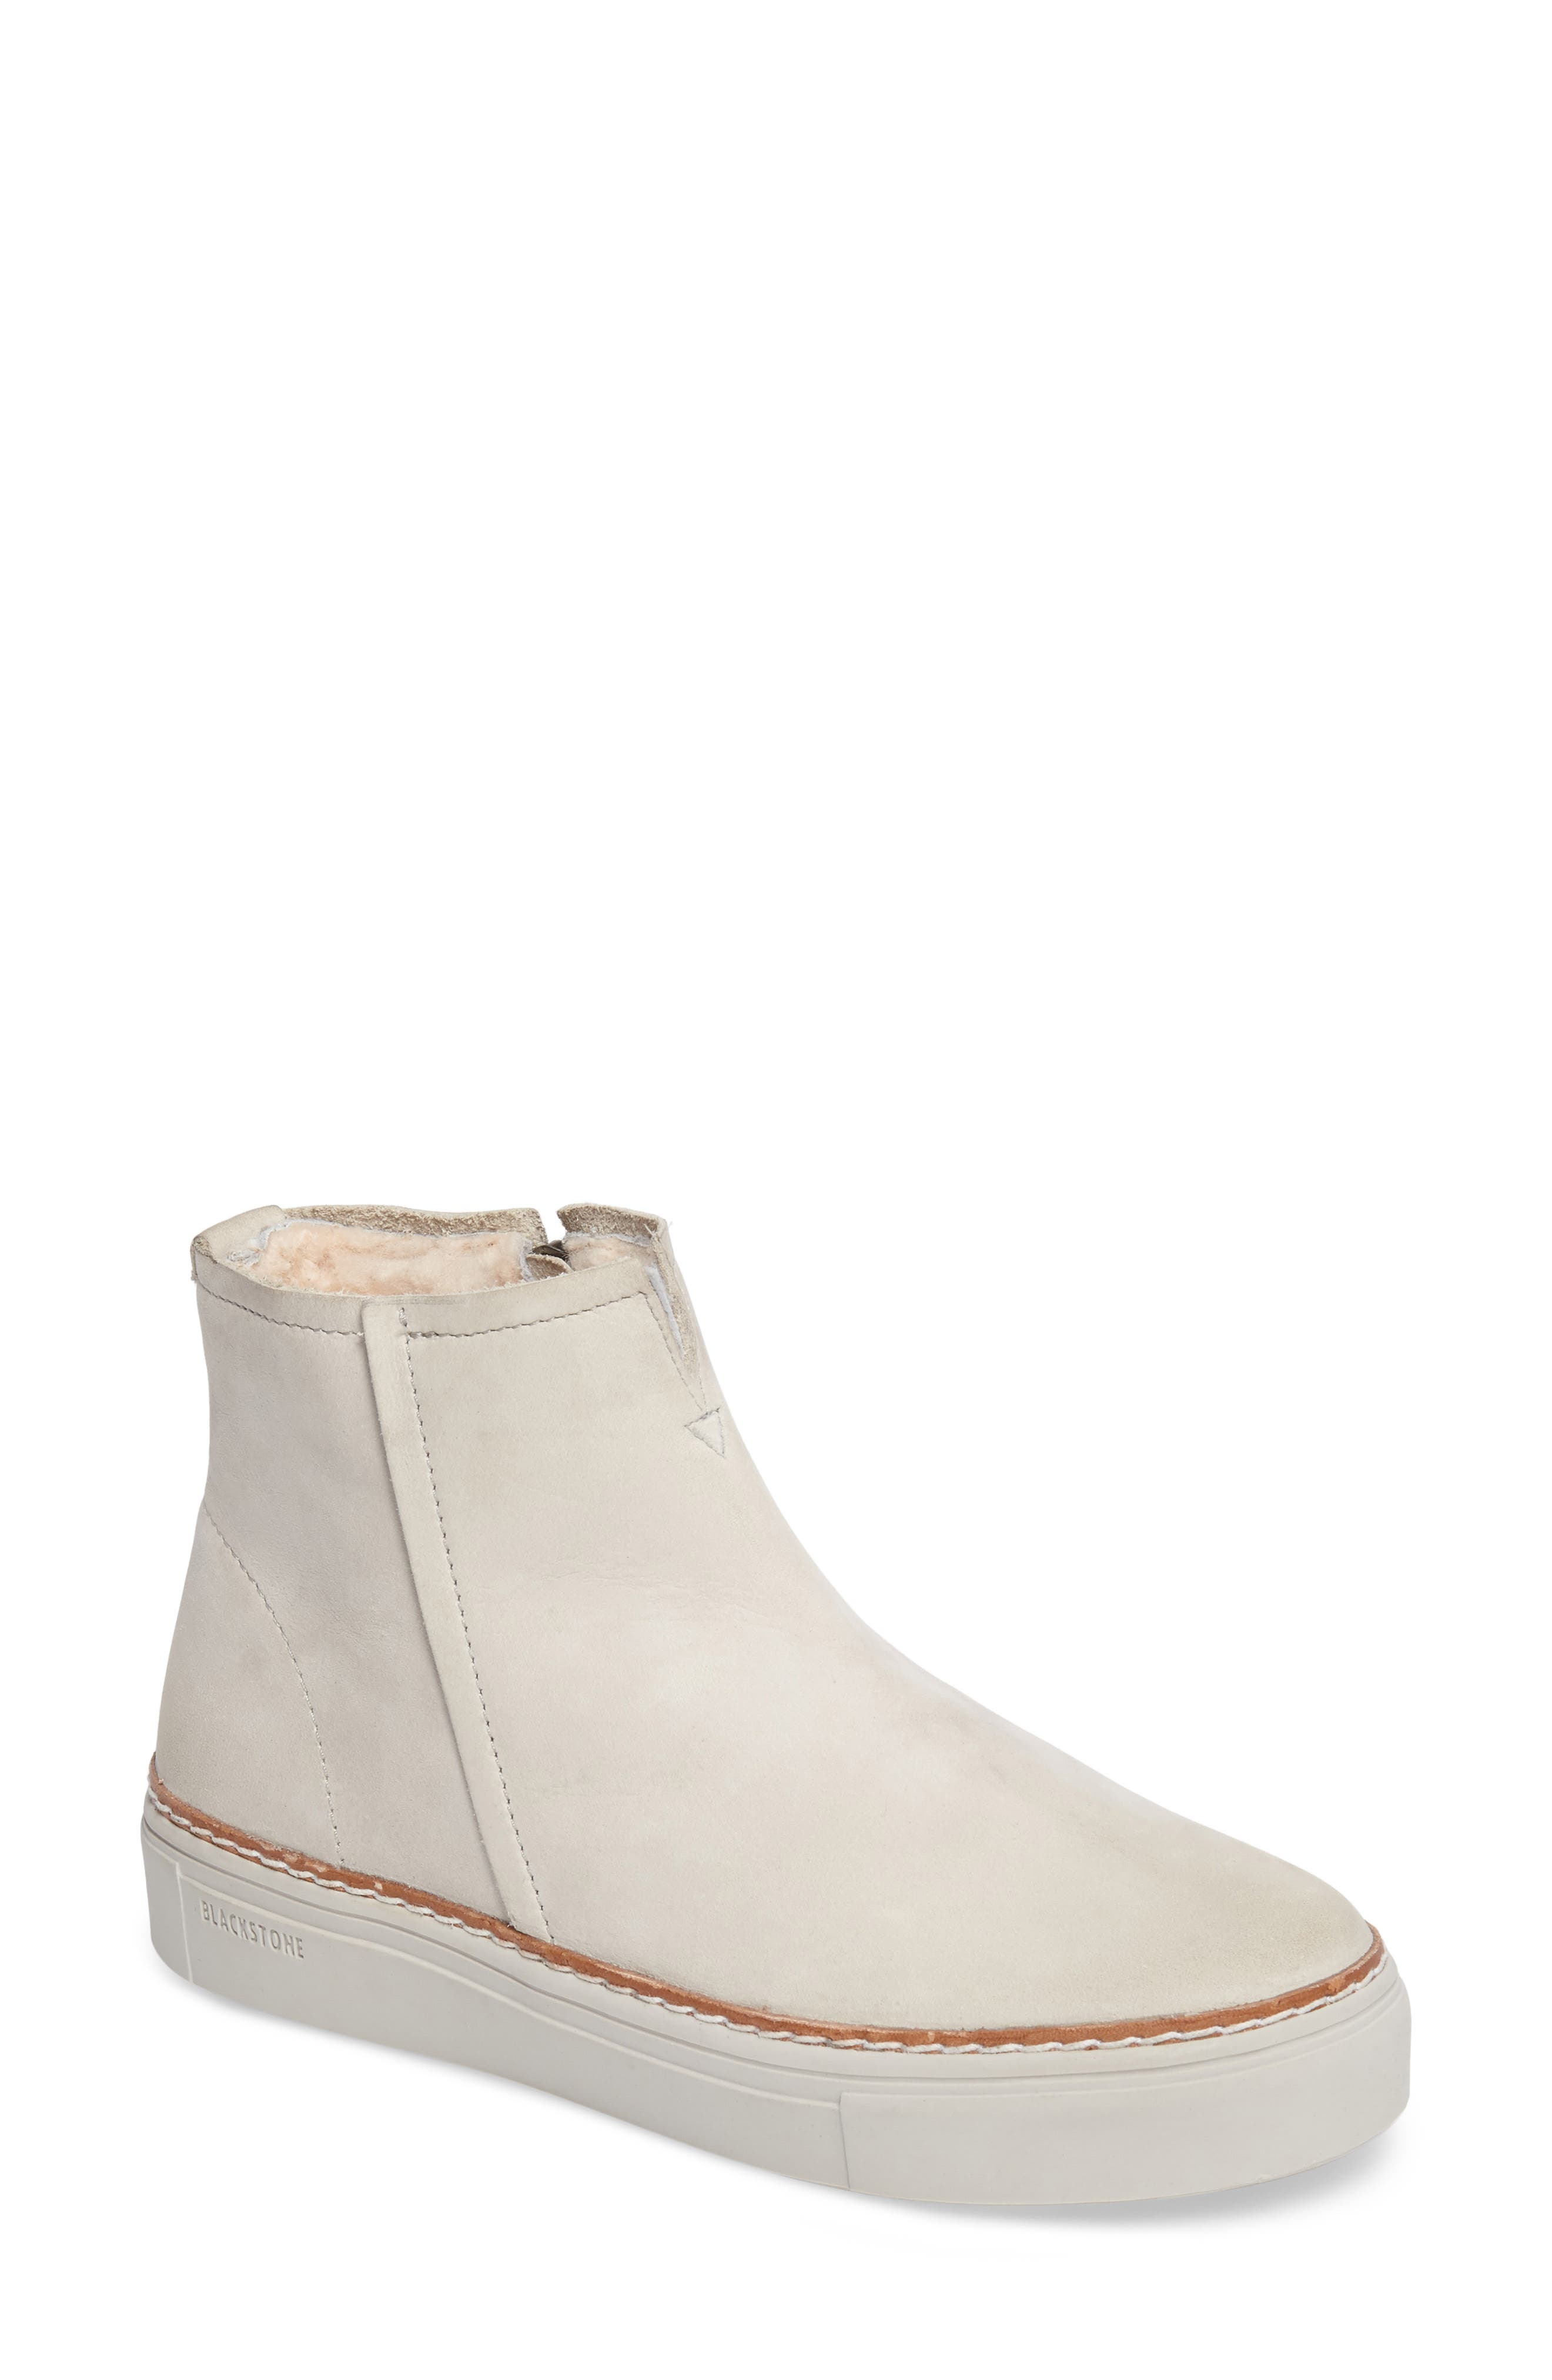 Blackstone Ol27 Genuine Shearling Lined Bootie, Grey